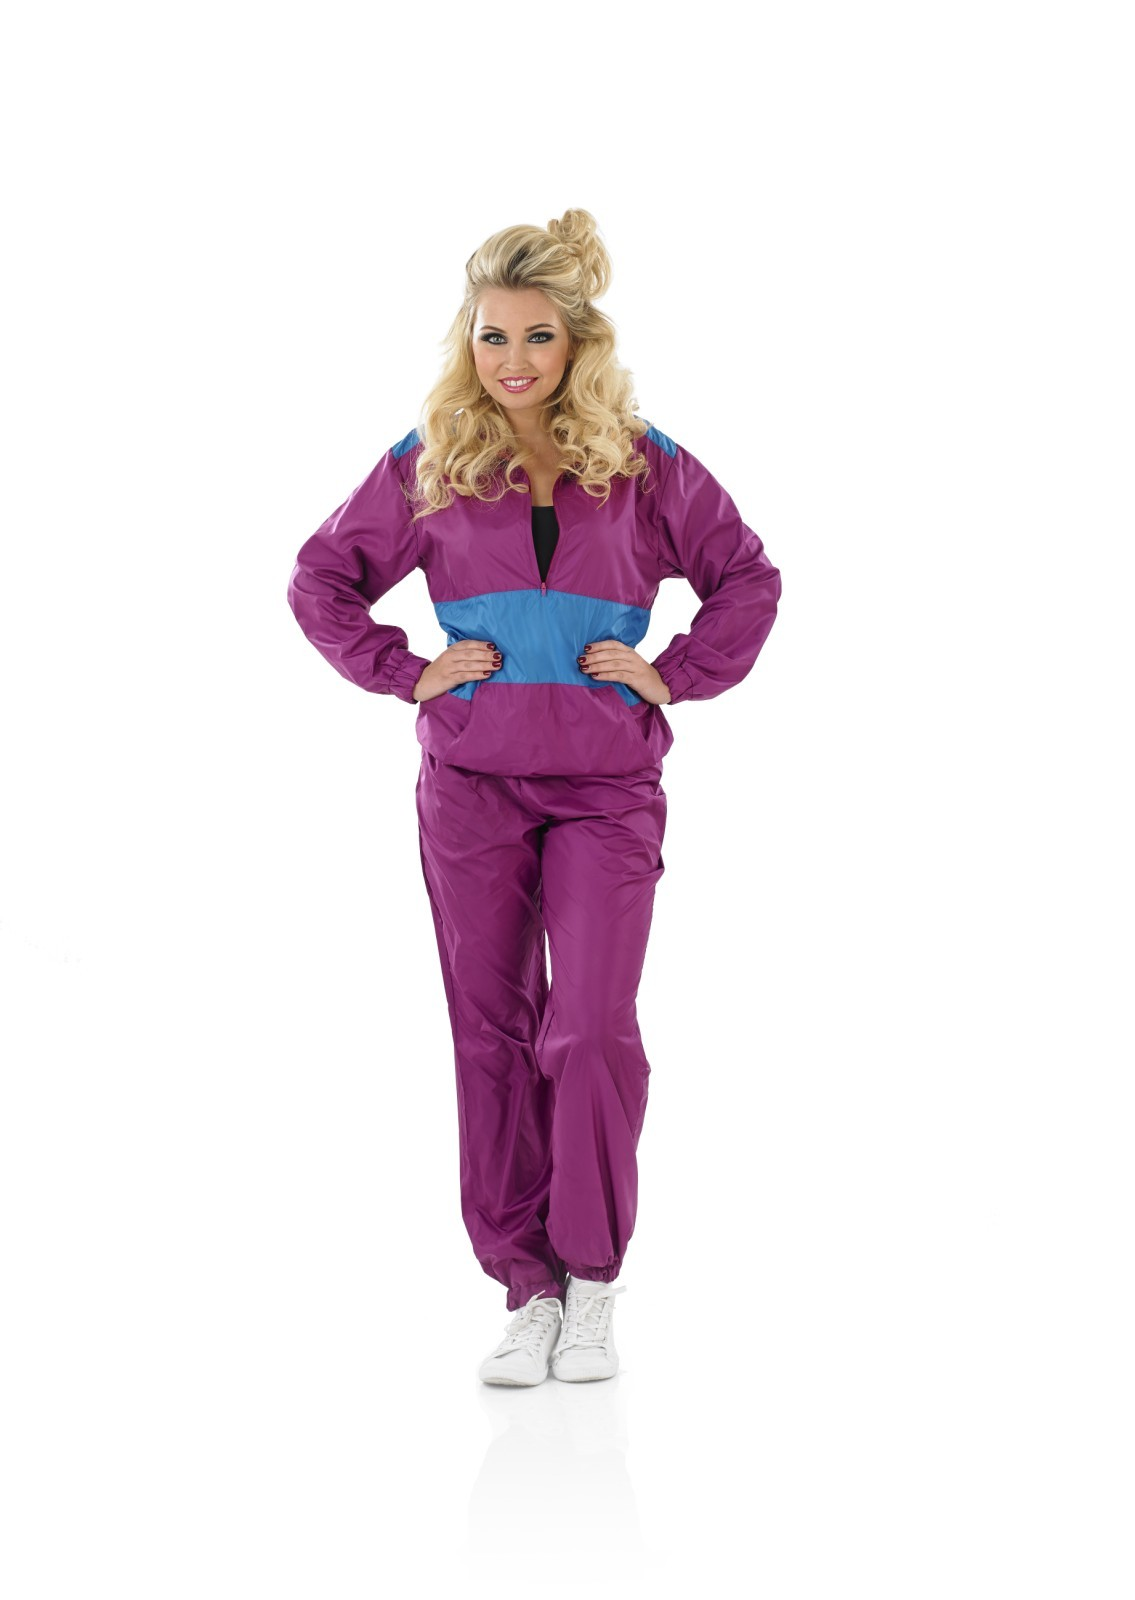 Ladies shell suit costume for 90s scouser fancy dress adults ladies shell suit costume for 90s scouser fancy dress adults womens sciox Image collections